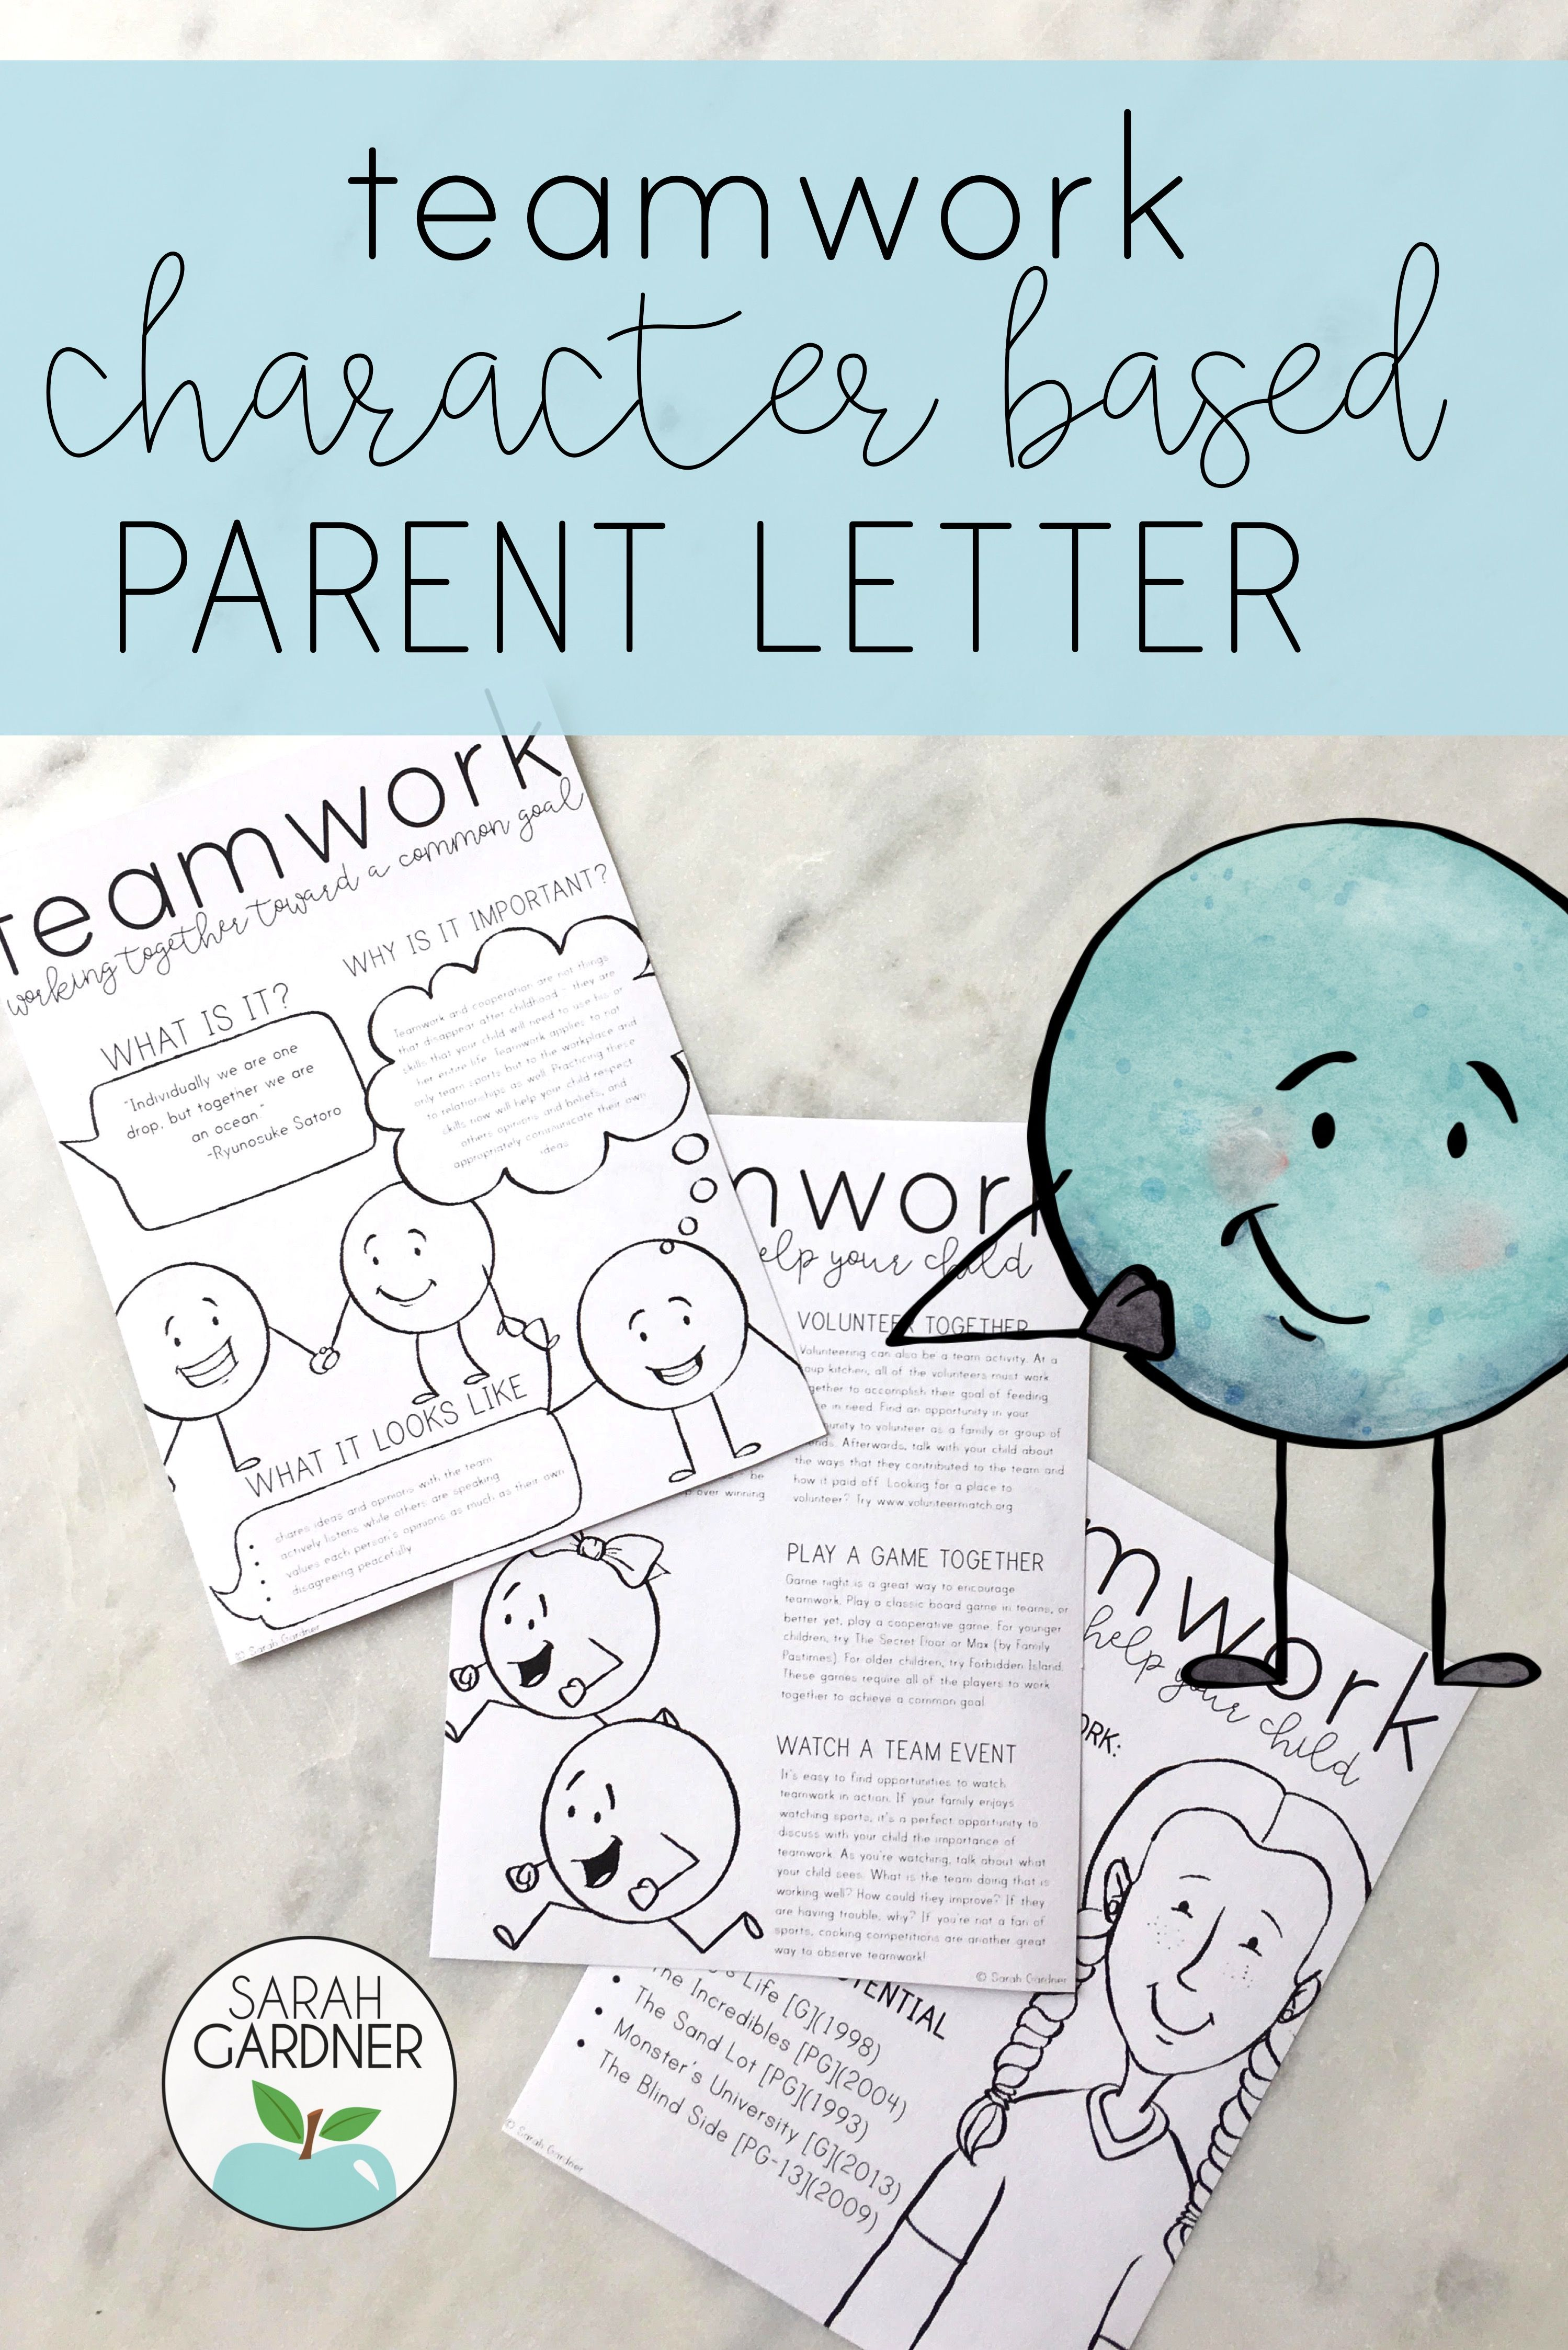 Teamwork Parent Letter